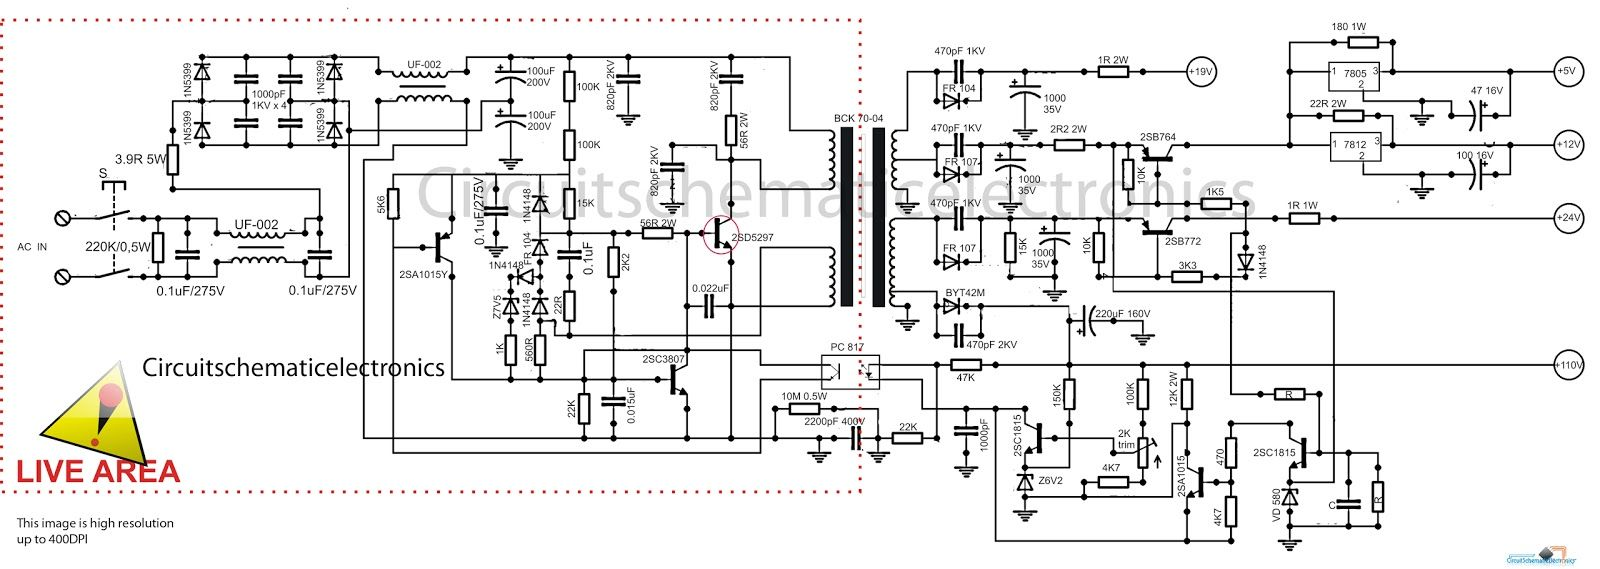 Switching power suplly for color television circuit